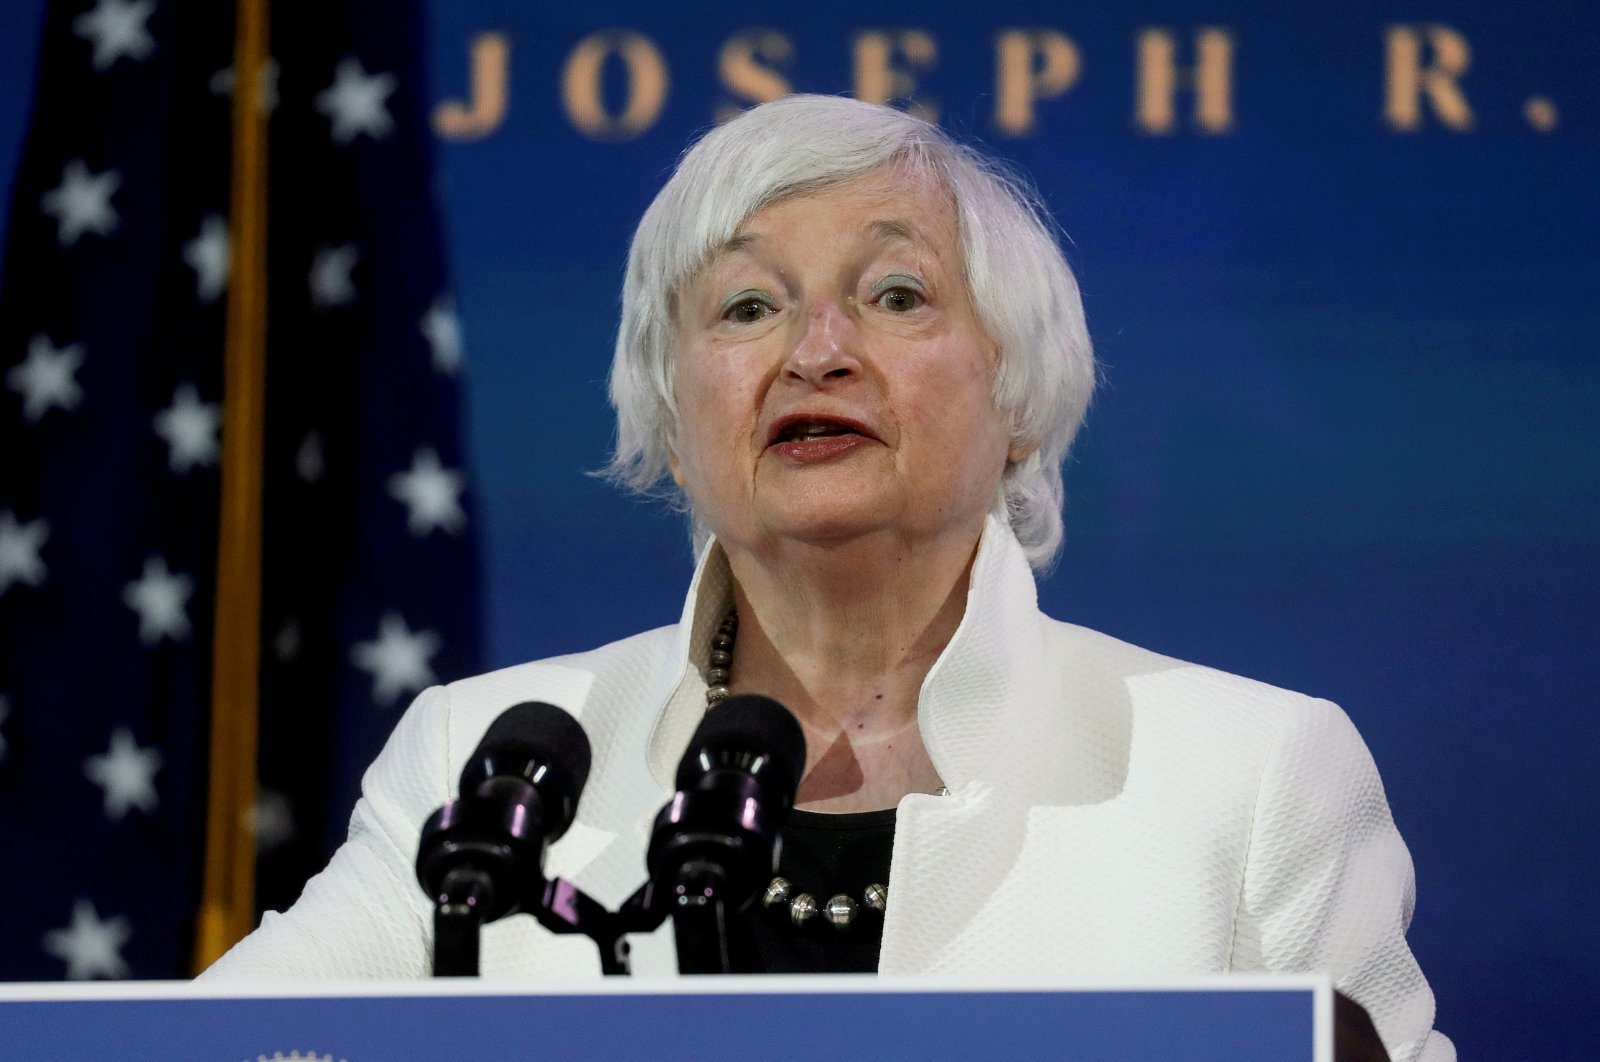 Janet Yellen speaks as Biden announces nominees and appointees to serve on his economic policy team at his transition headquarters in Wilmington, Delaware, U.S., Dec. 1, 2020. (Reuters Photo)